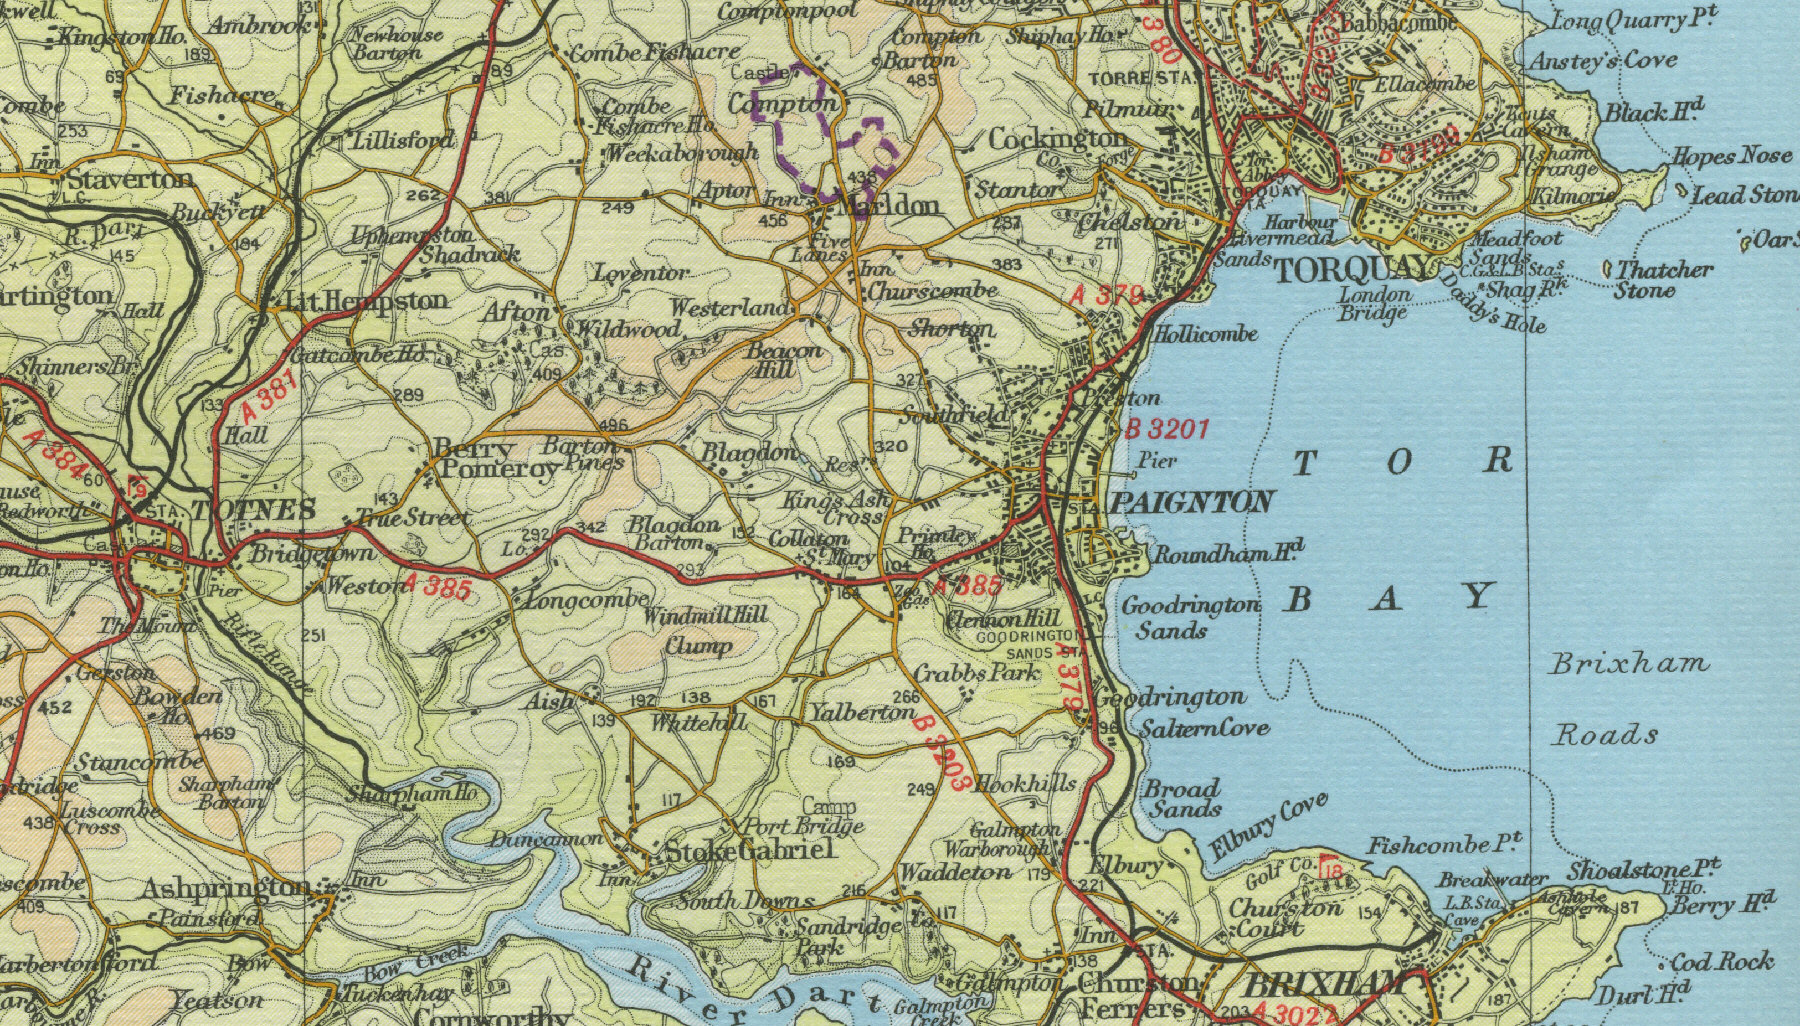 of paignton old map of the town of paignton circa 1950 click on the ...